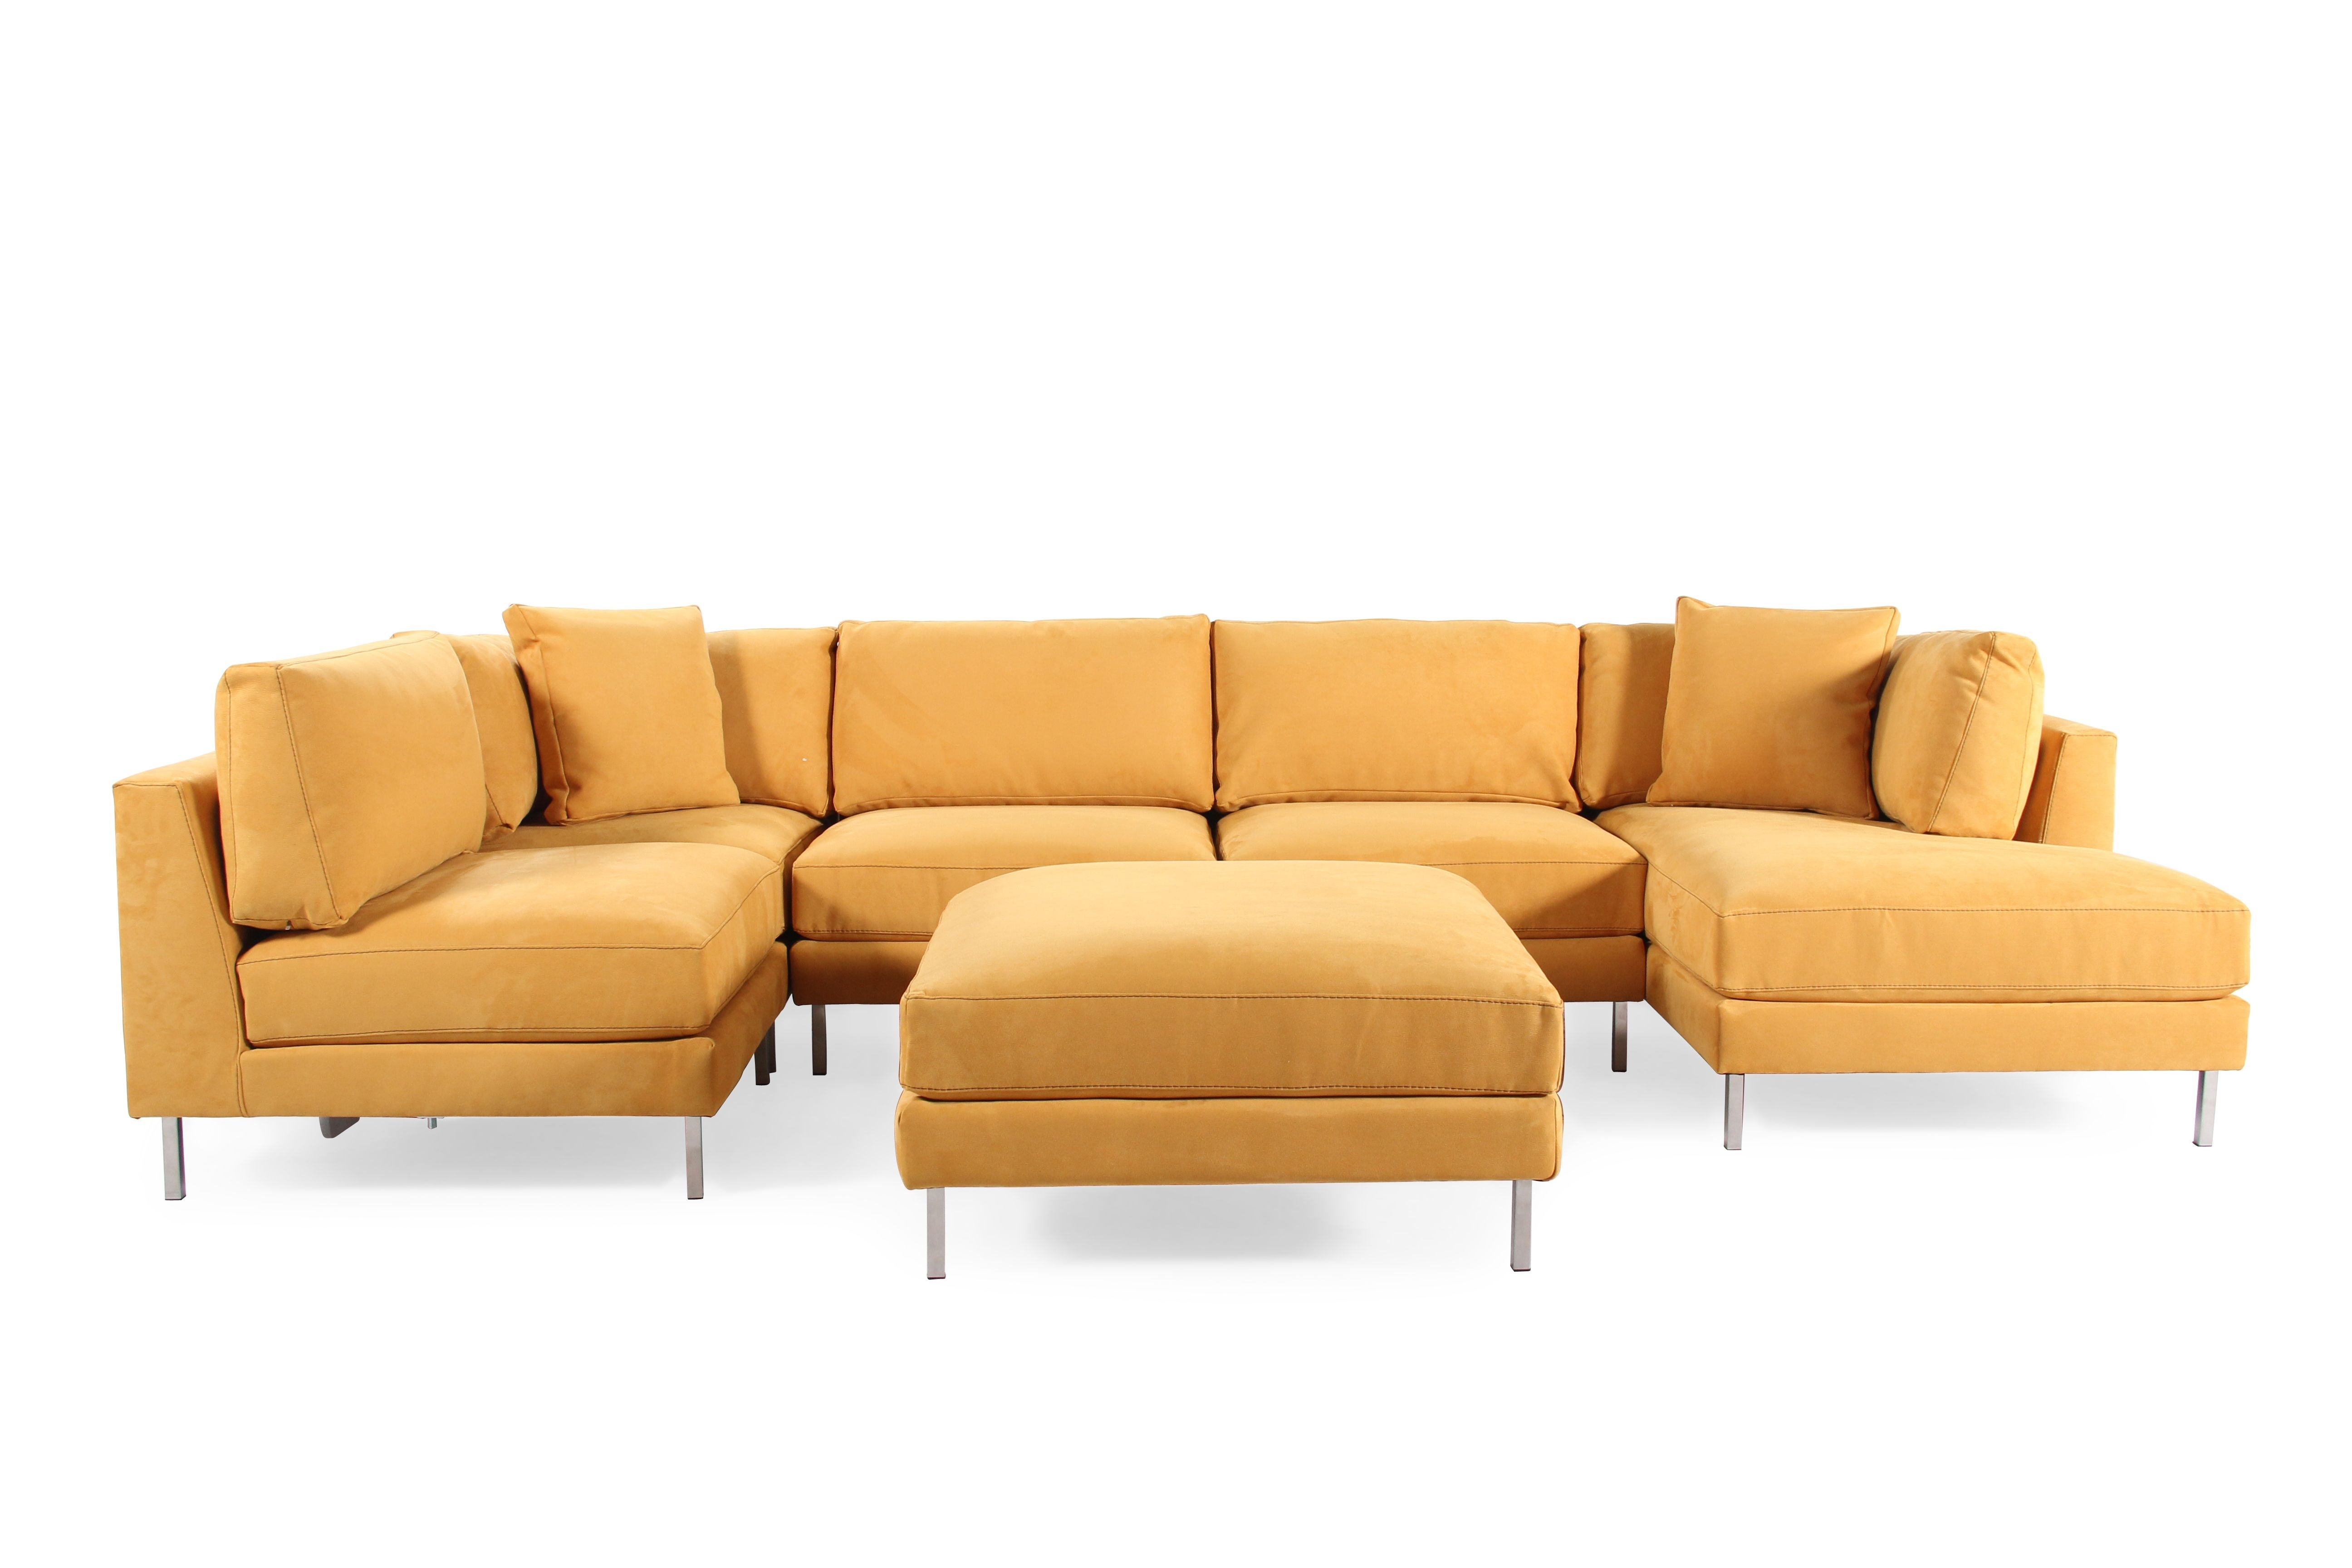 Jonathan Louis Remy Six Piece Sectional | Mathis Brothers Furniture Inside Mathis Brothers Sectional Sofas (View 3 of 10)